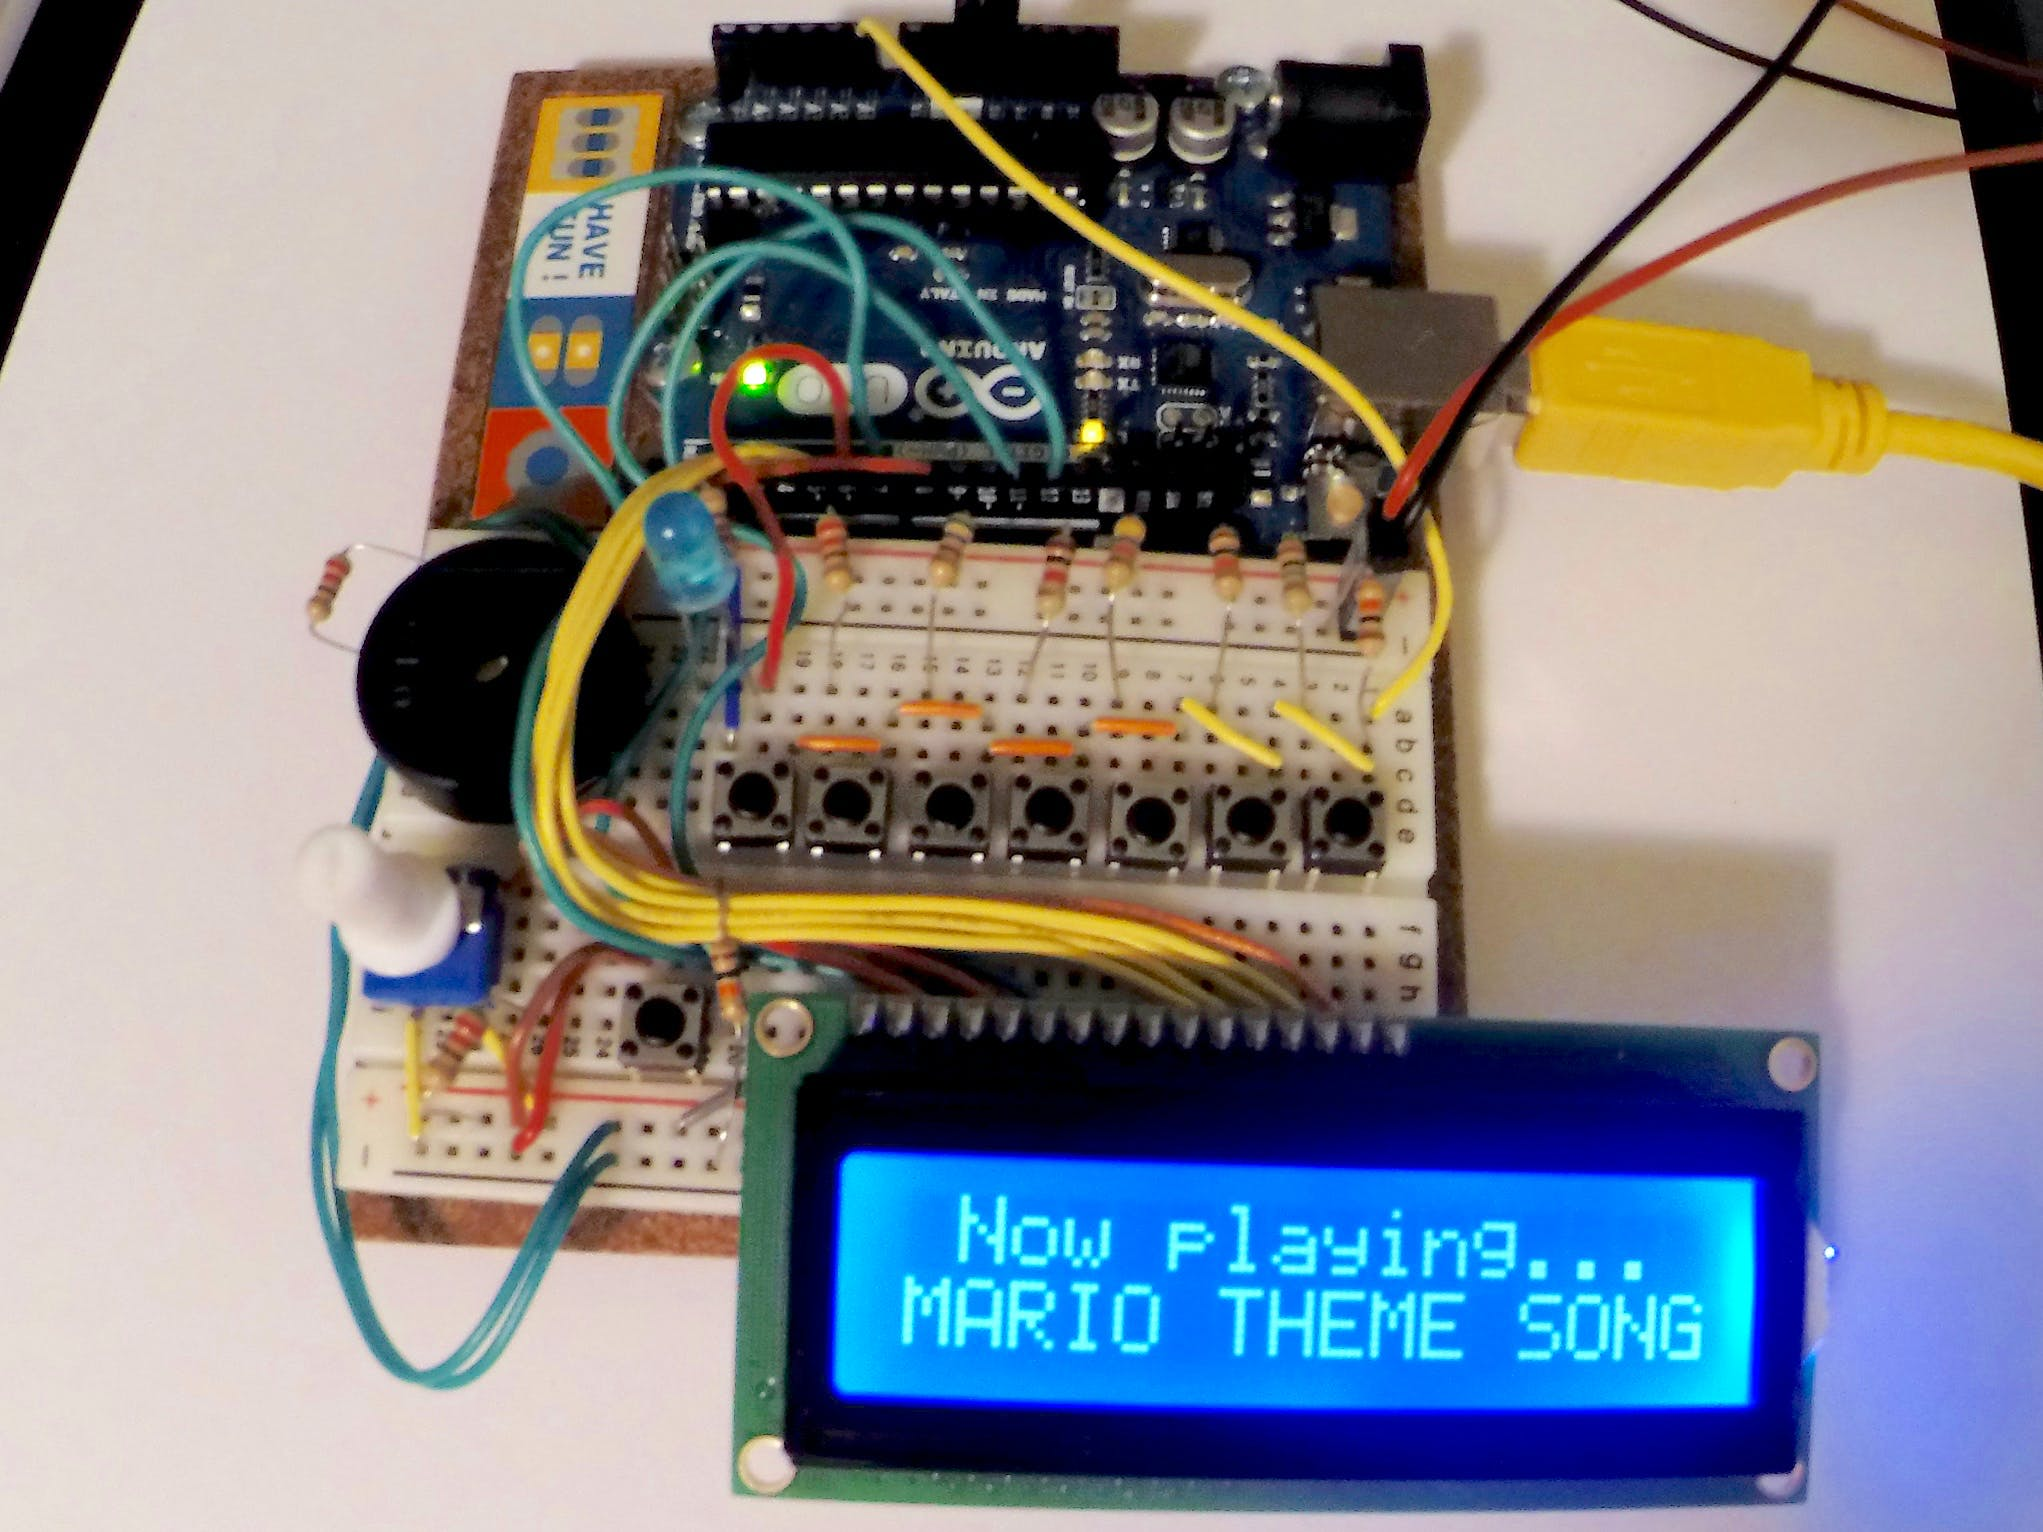 Push any piano key to play a song shown on the menu. The LCD will show the current song title.